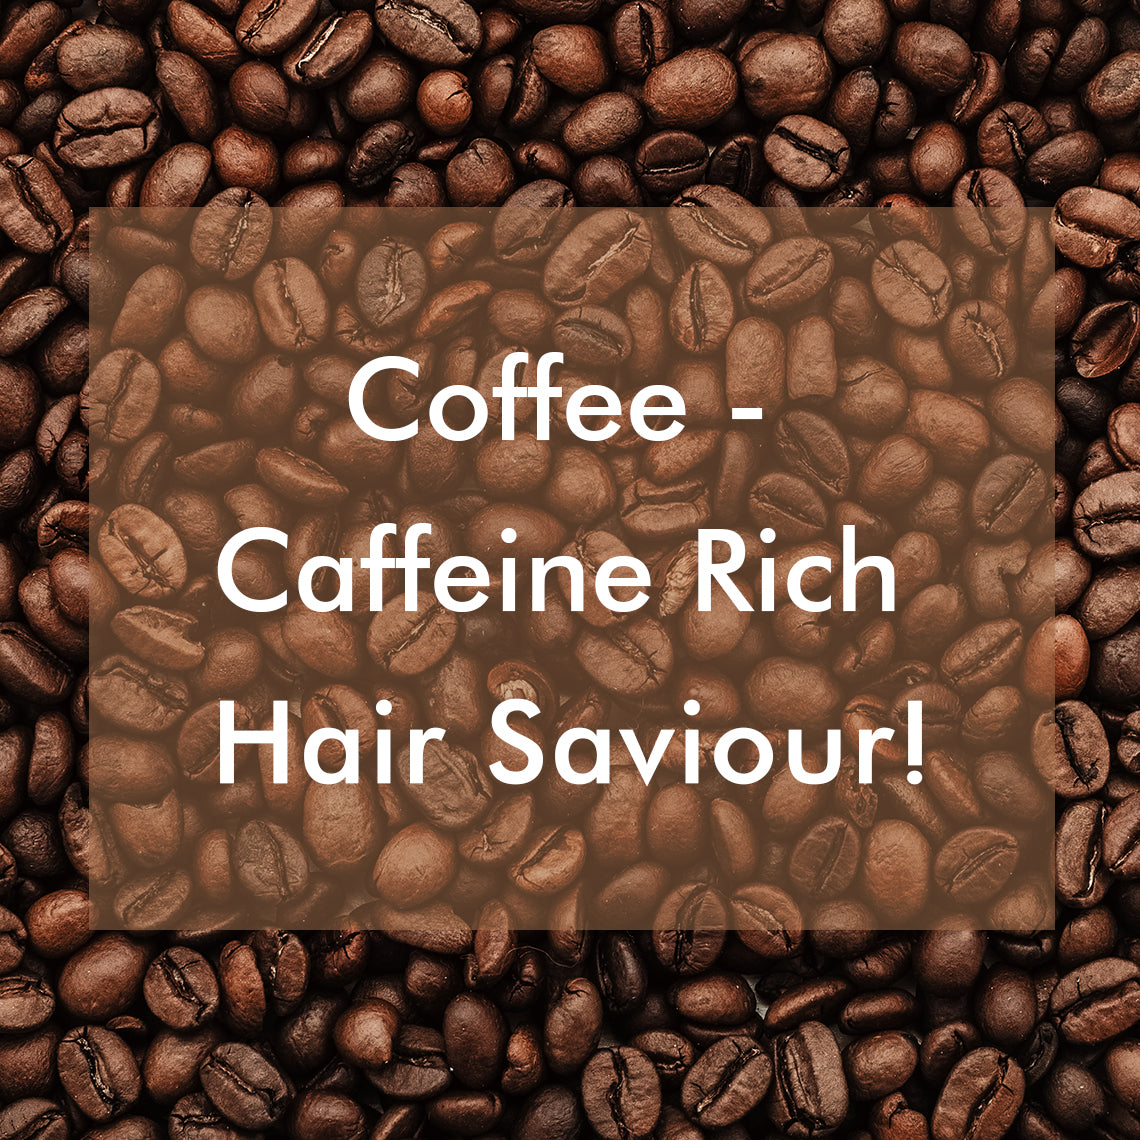 Coffee for Hair - Benefits of Caffeine for Hair